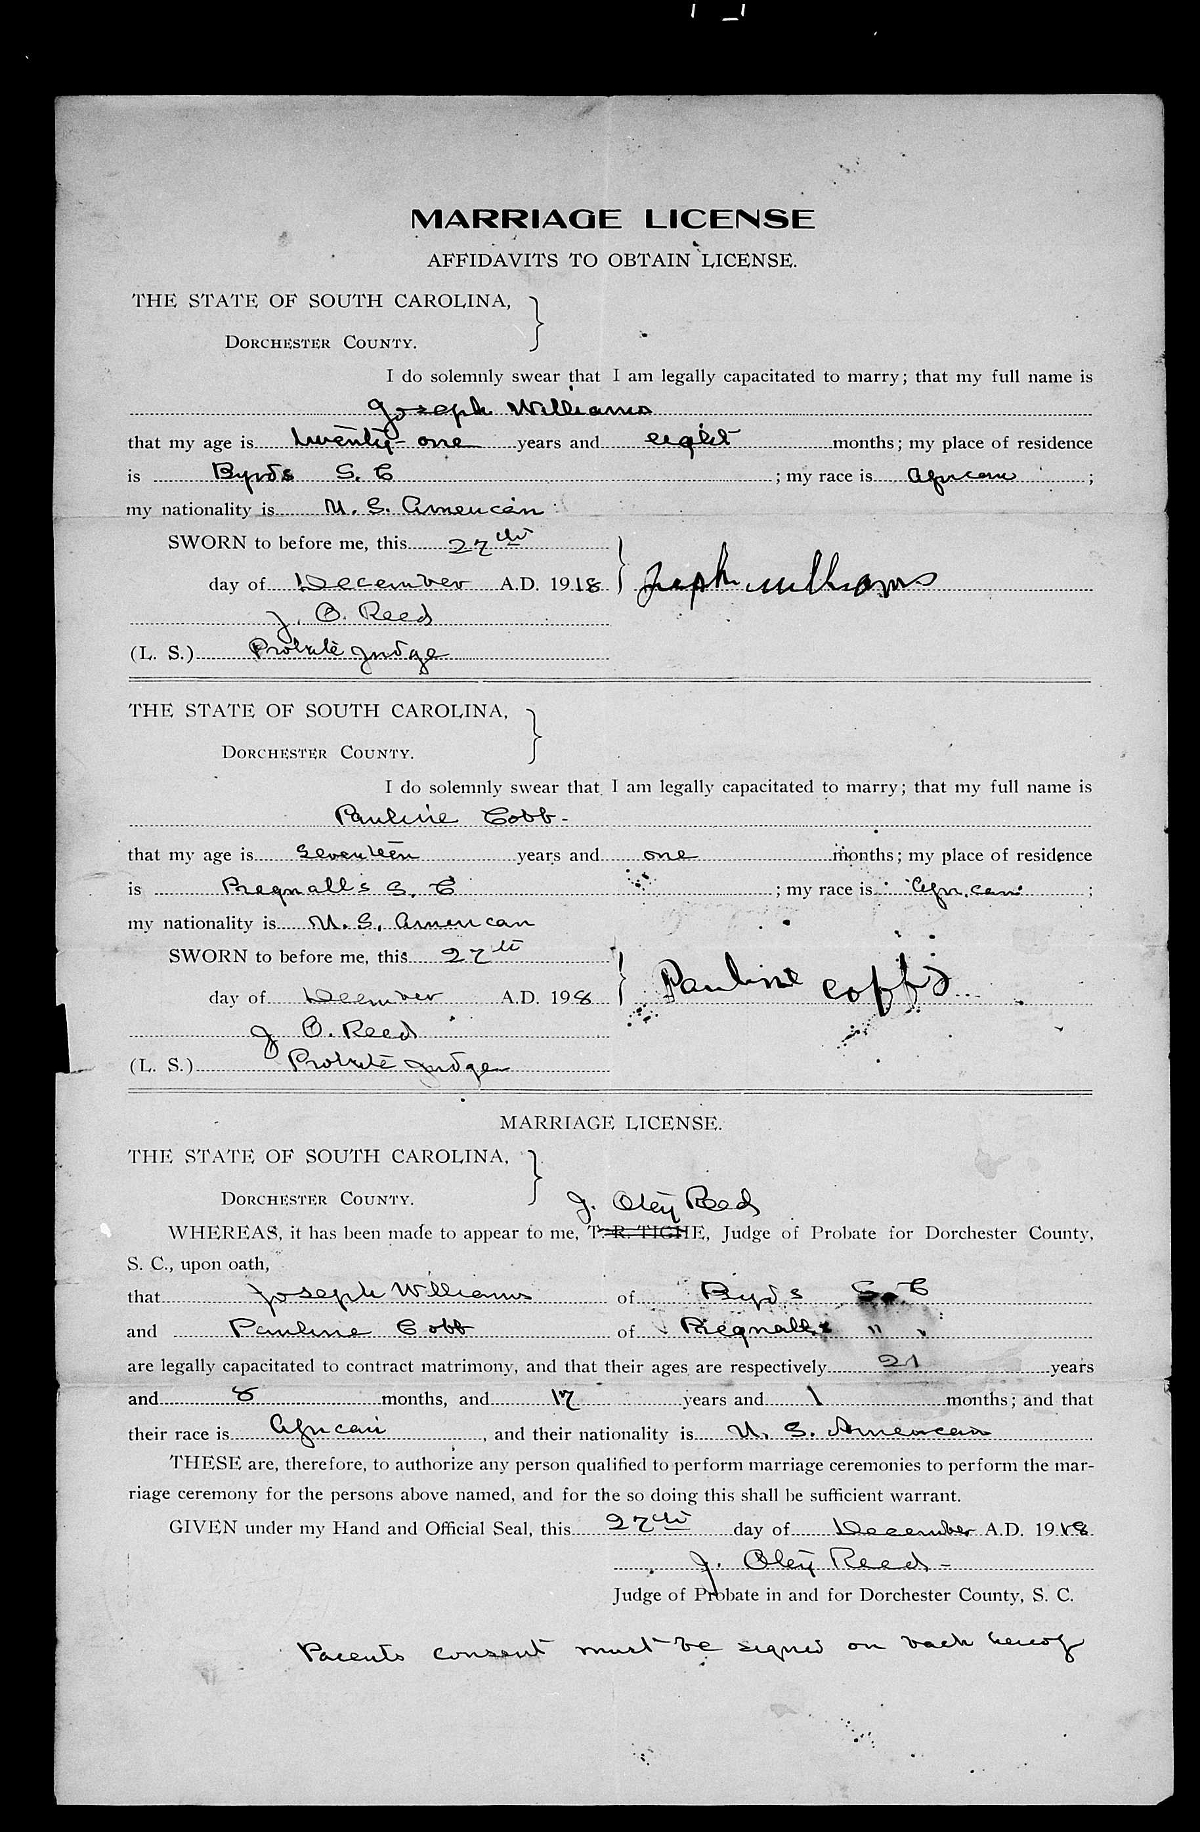 Found on FamilySearch: Dorchester County, South Carolina